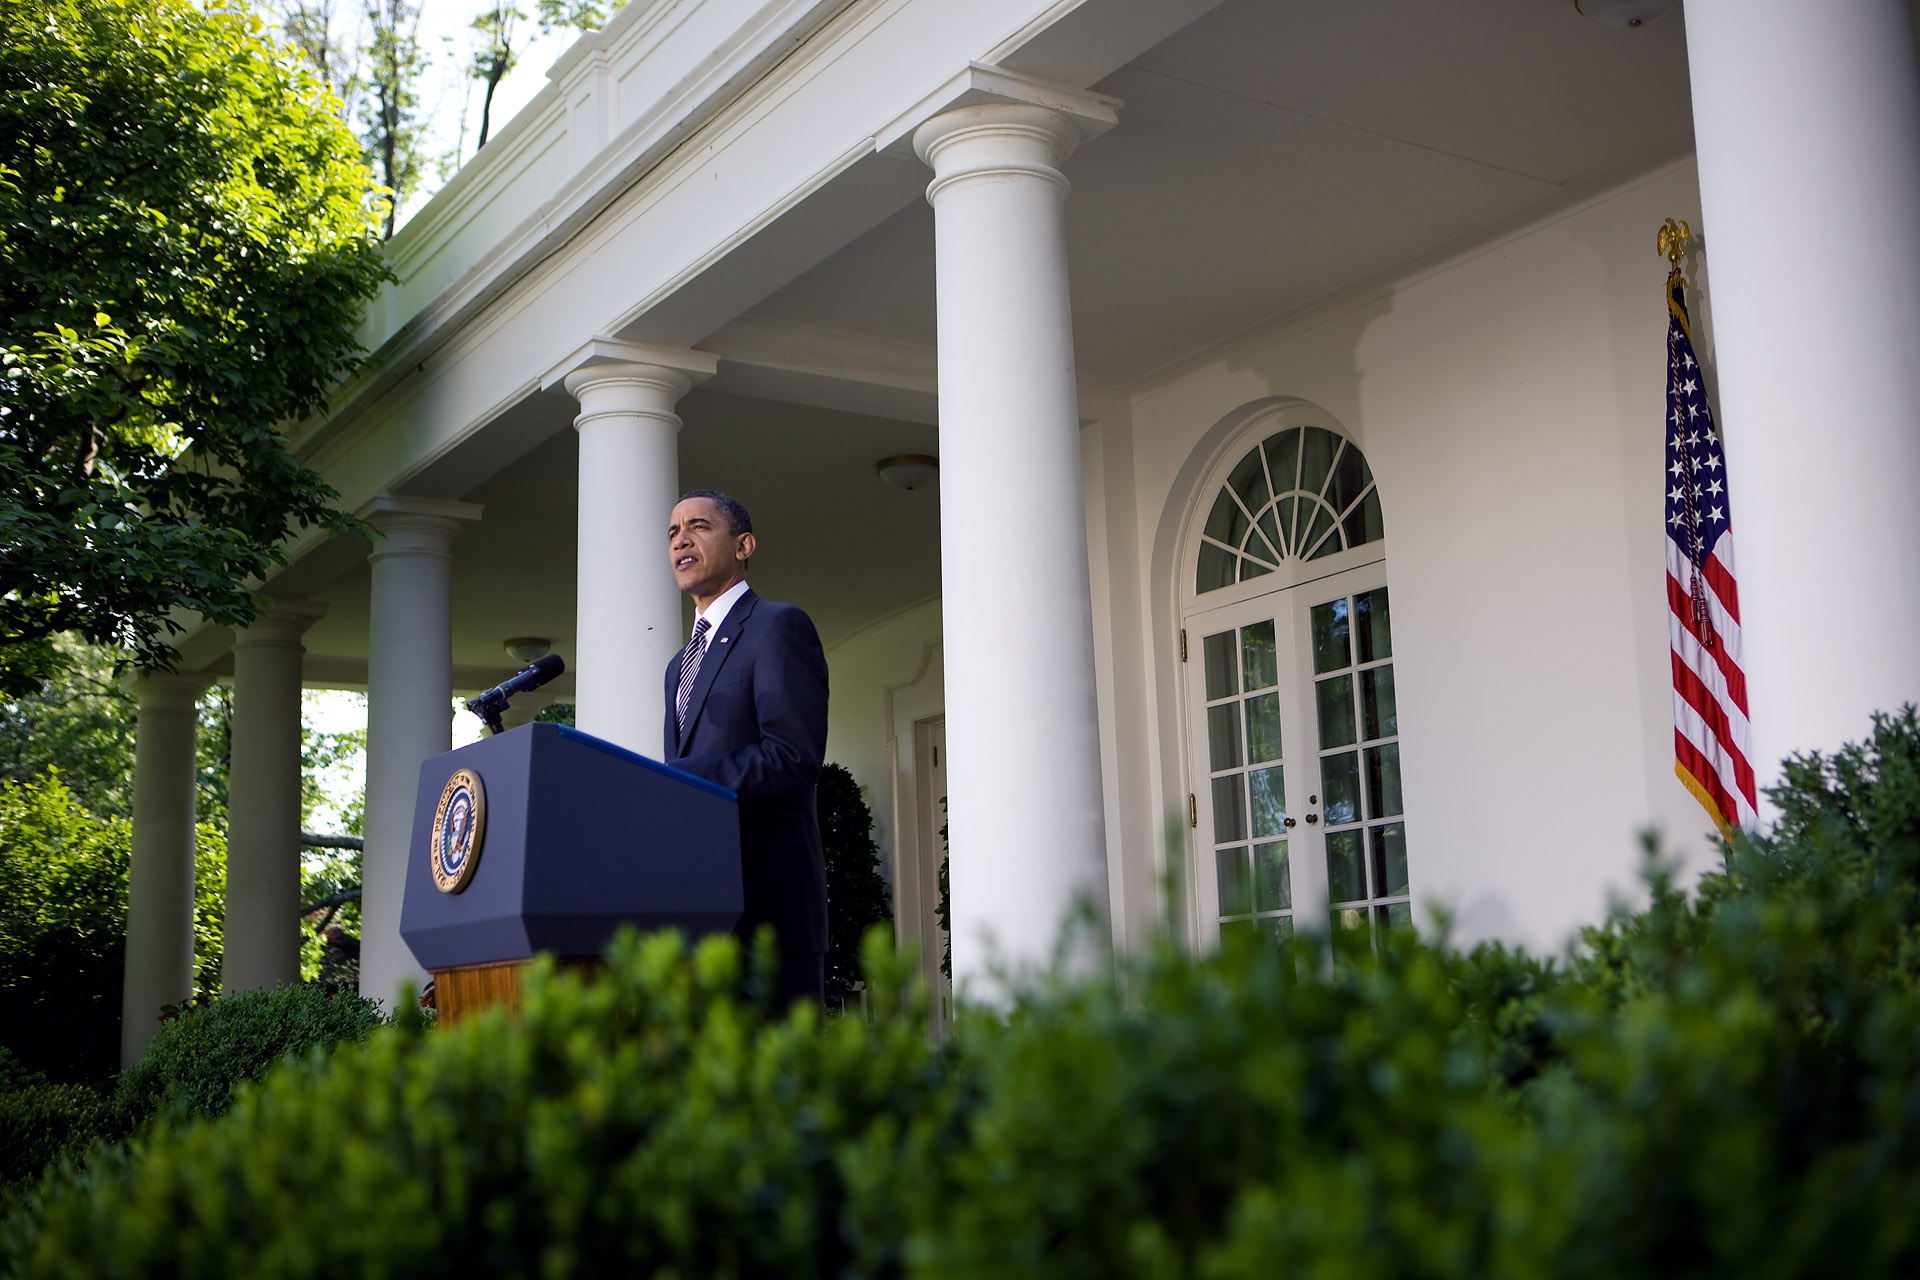 President Barack Obama makes a statement on Wall Street Reform